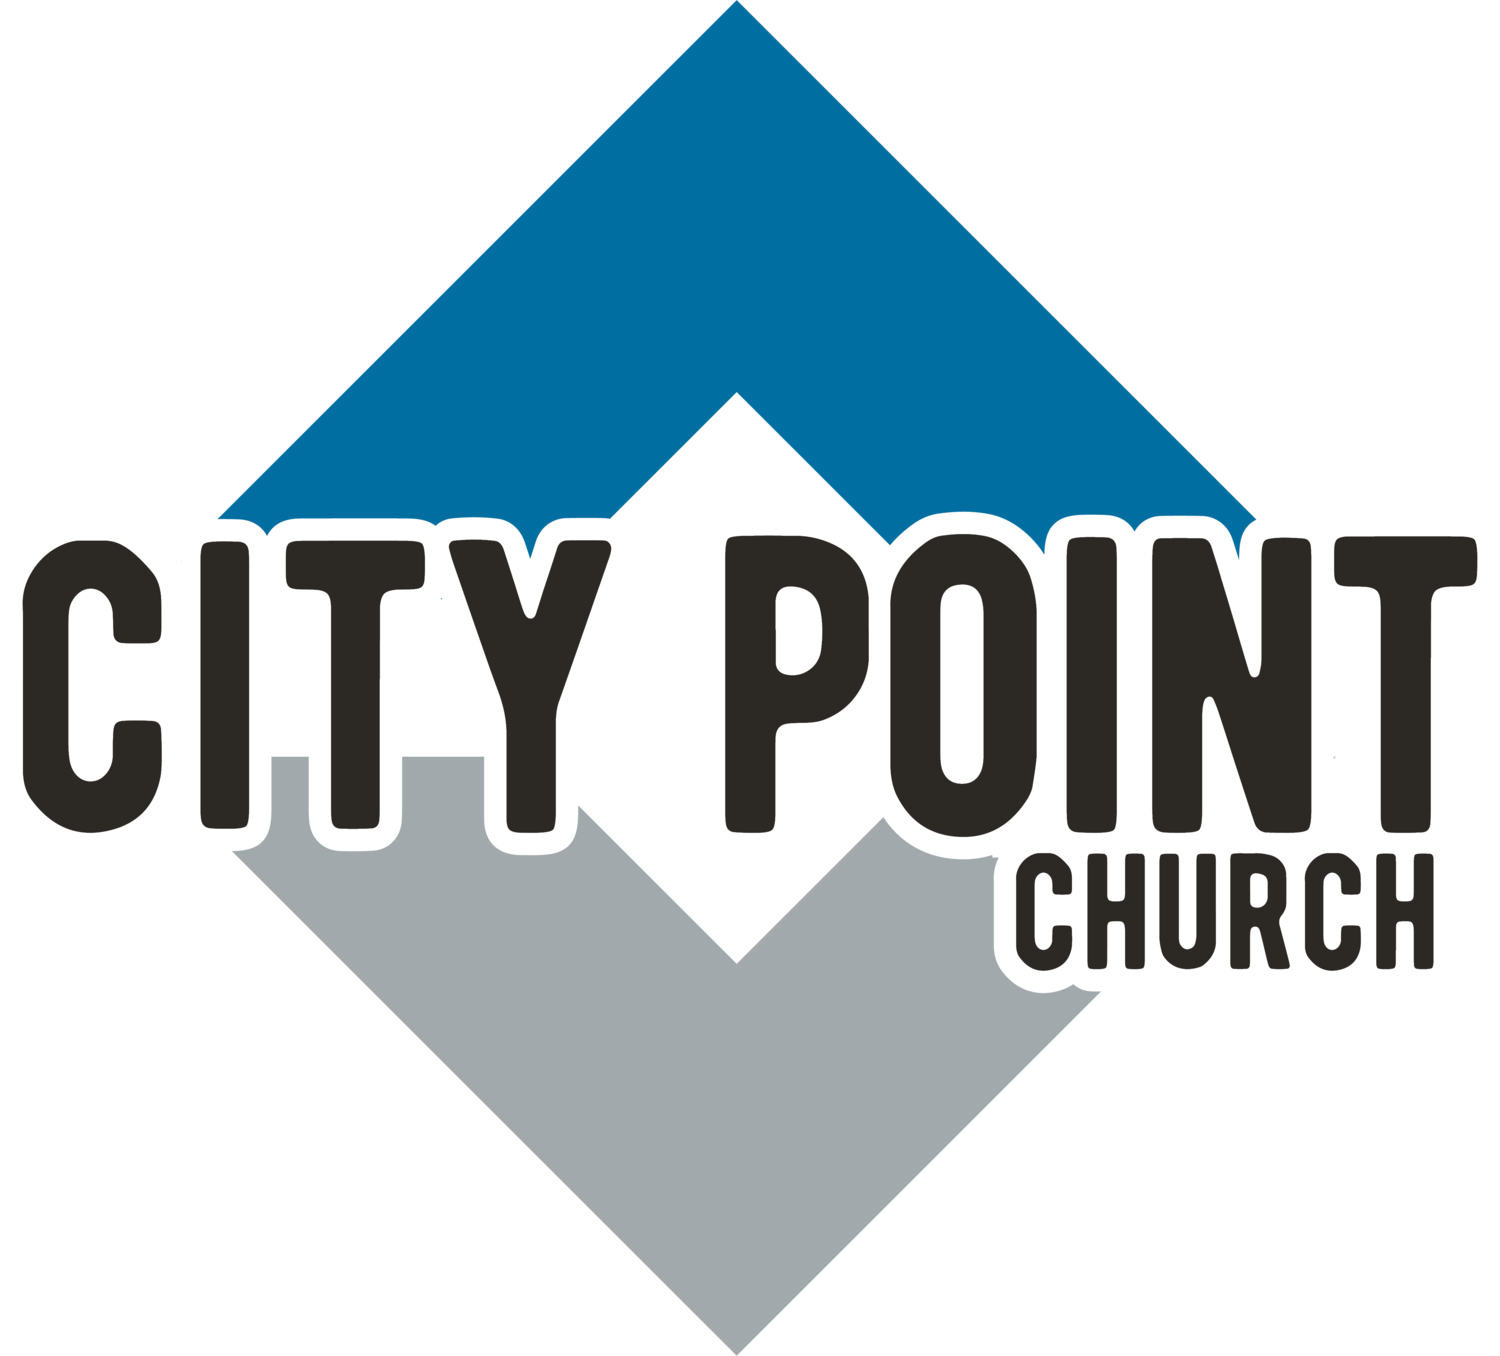 City Point Church